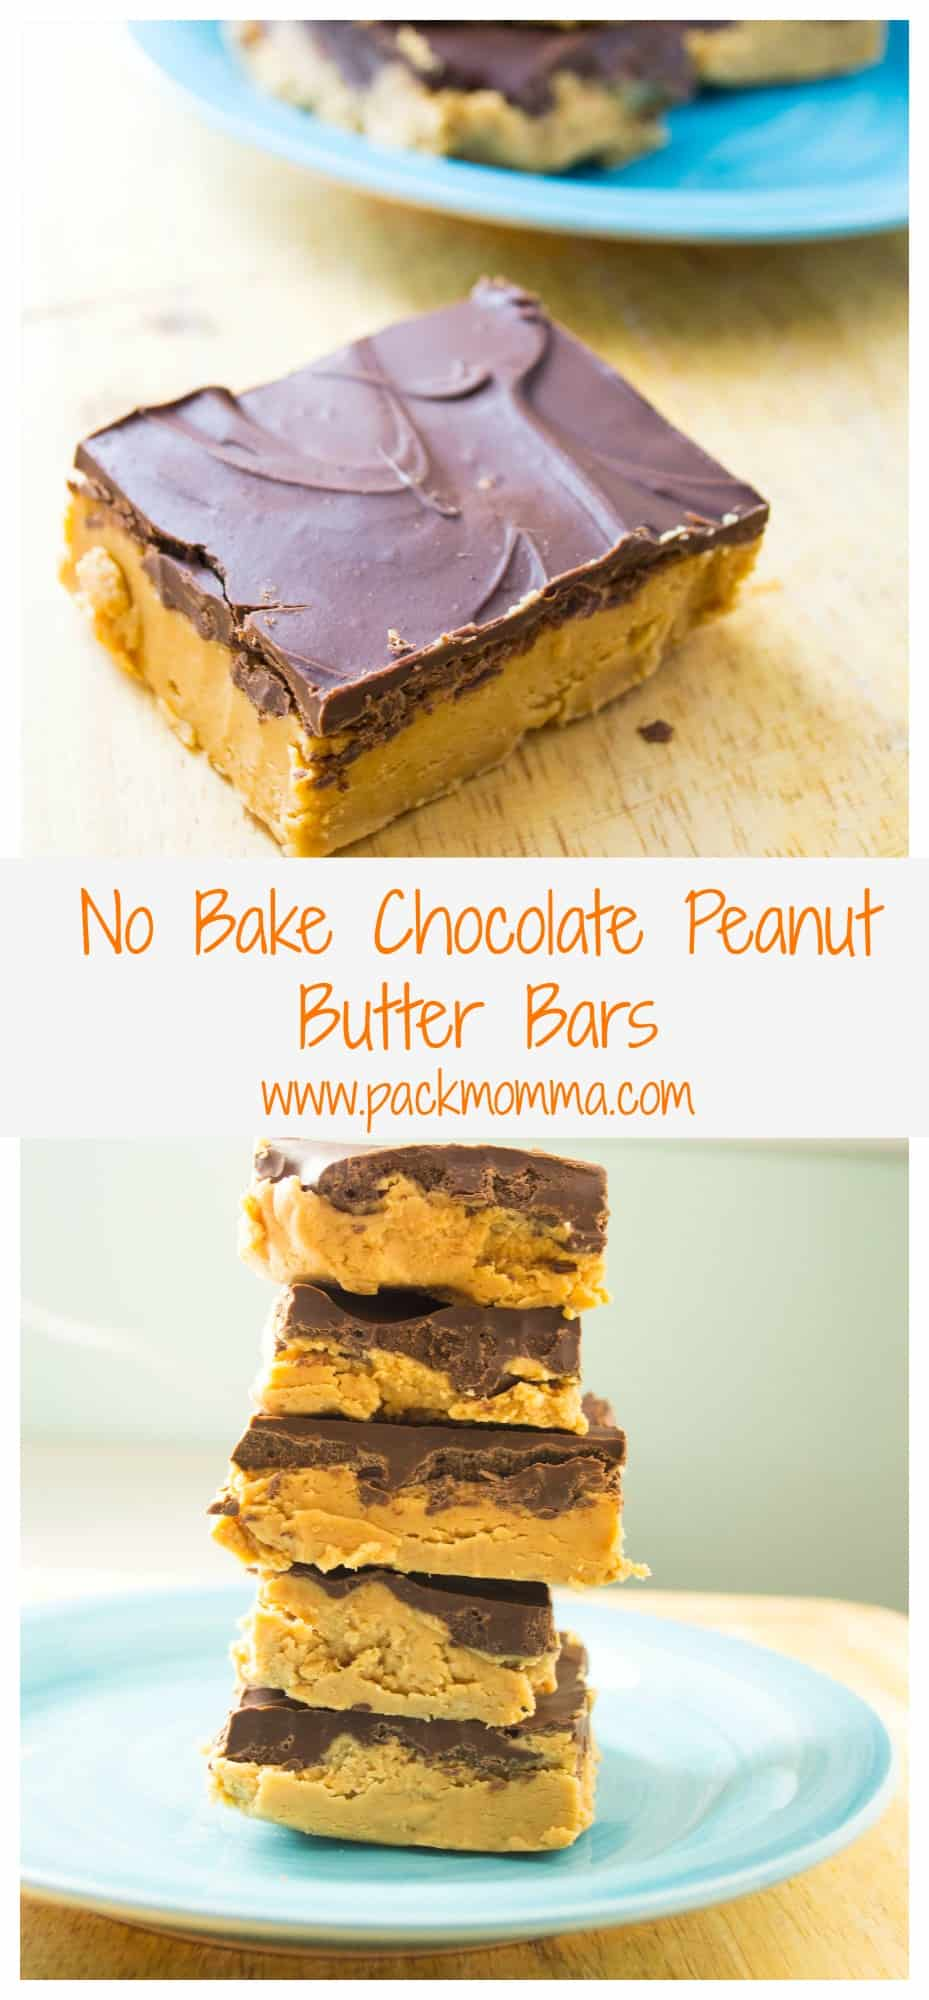 No Bake Chocolate Peanut Butter Bars   No Bake Chocolate Peanut Butter Bars is the perfect combination of creamy peanut butter topped with a thick layer of rich chocolate. The best part?.. you don't even have to heat up your oven!   Pack Momma   https://www.packmomma.com